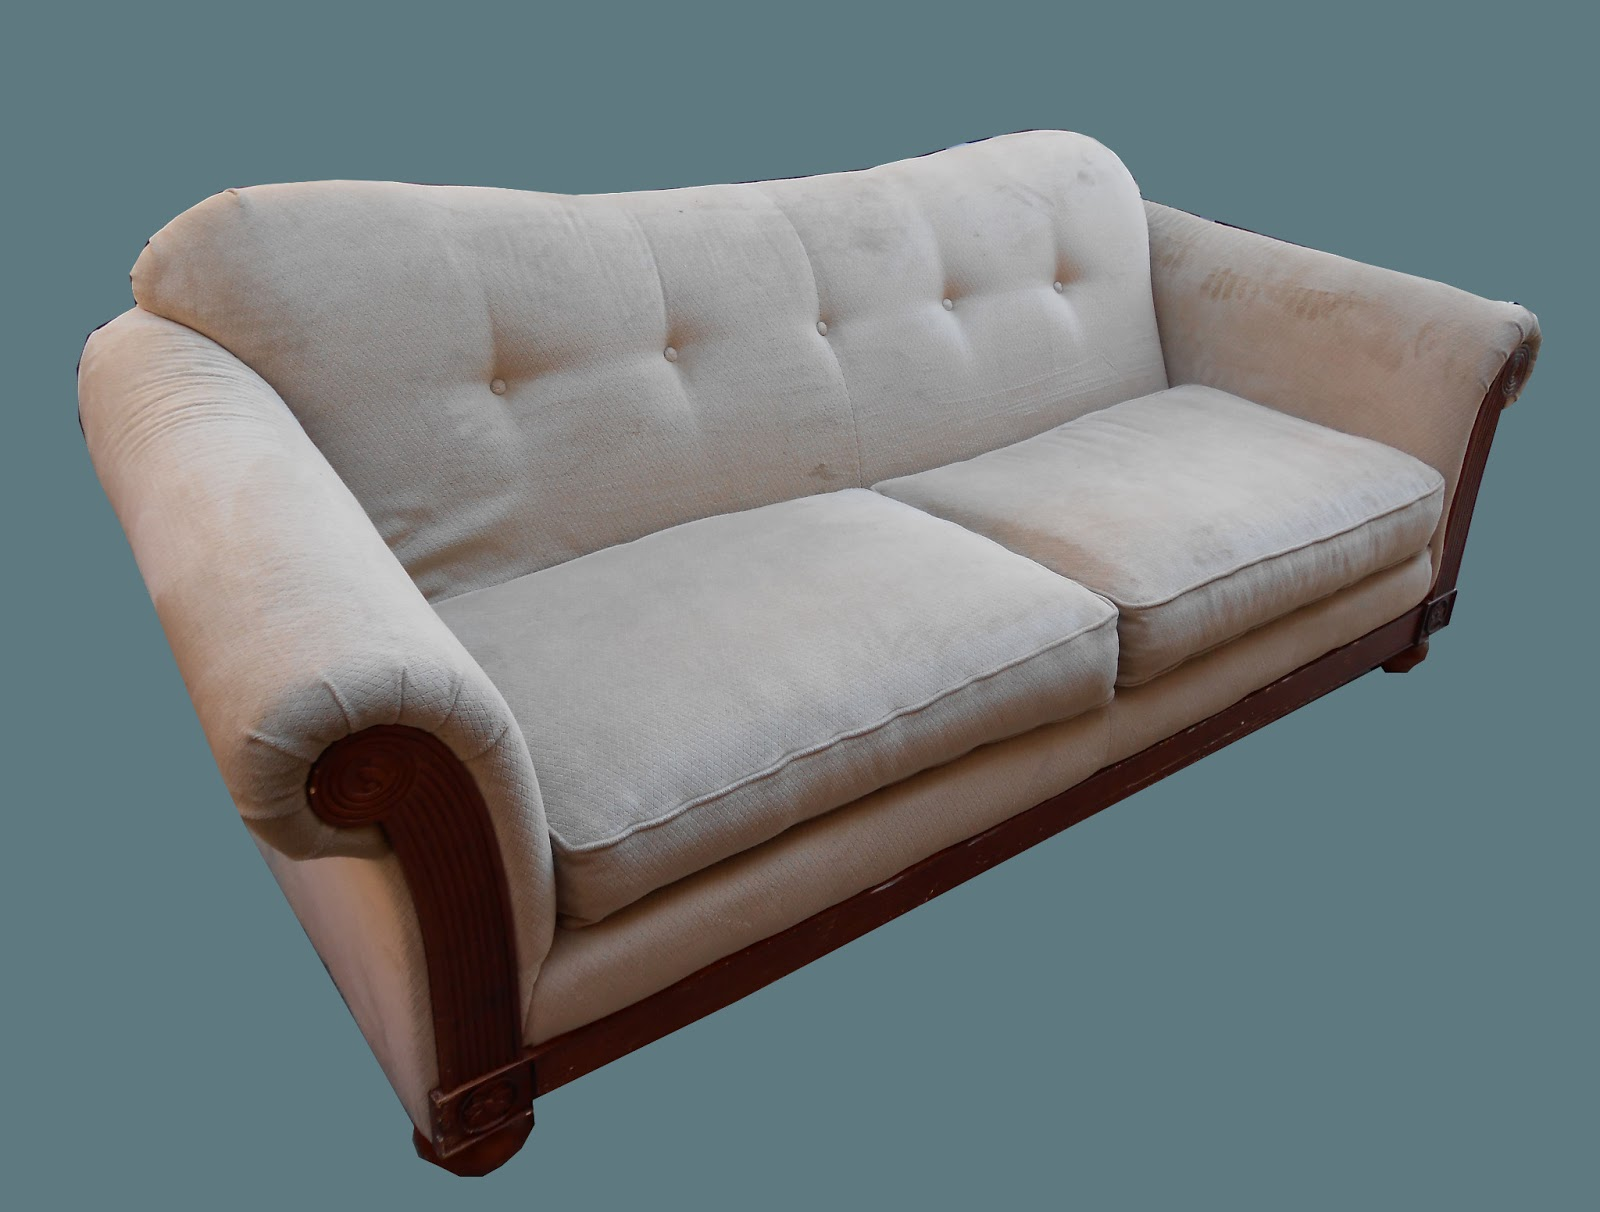 Uhuru Furniture Collectibles Double Camel Back Sofa Sold